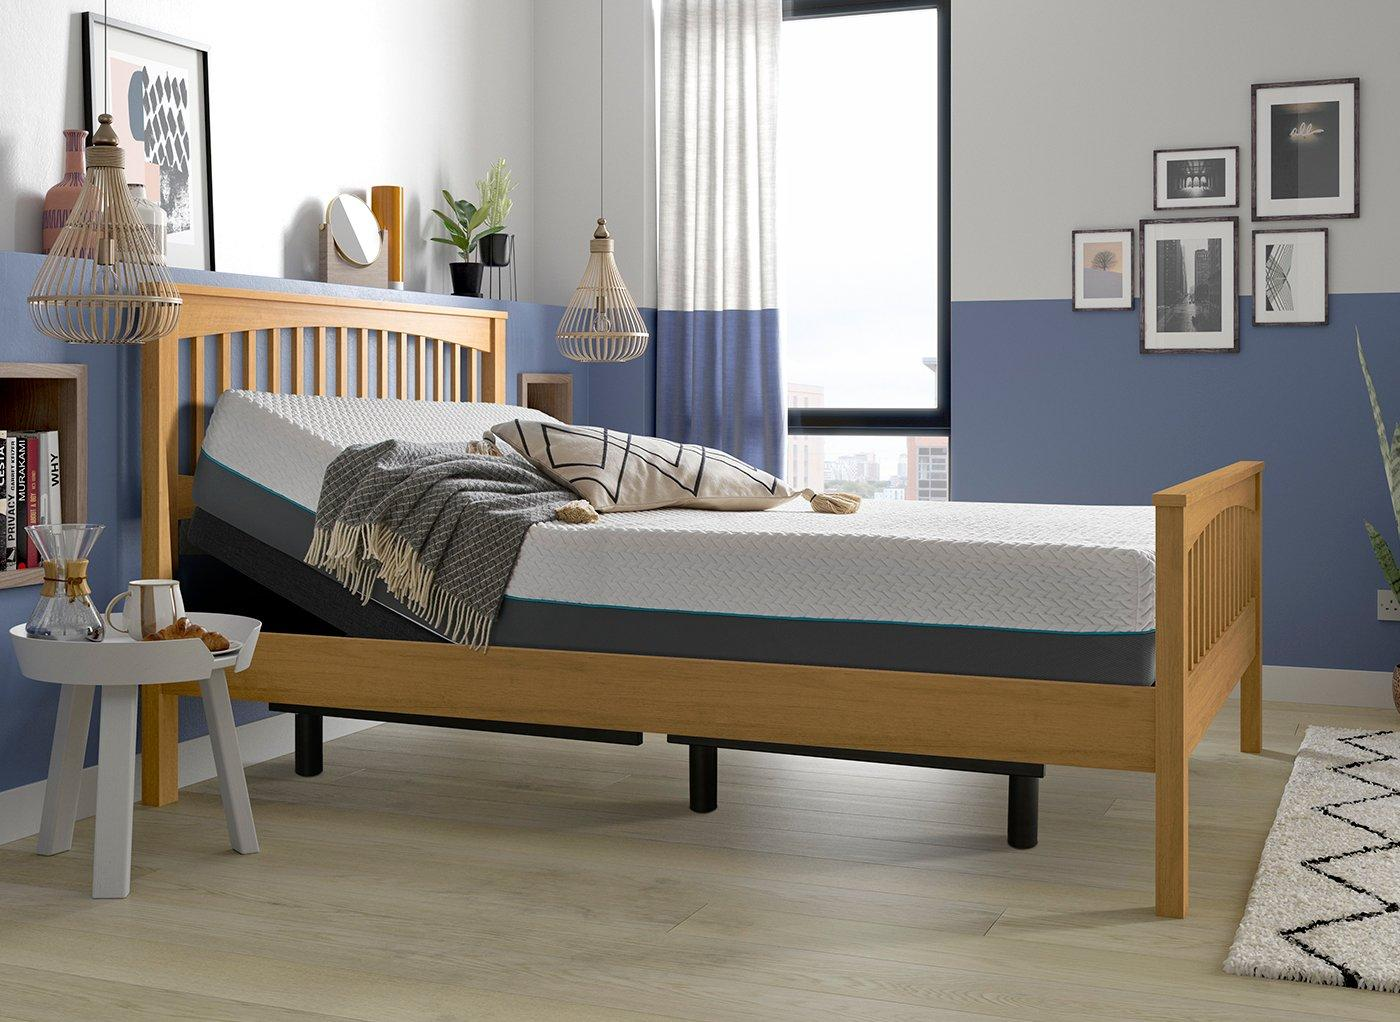 fleetwood-sleepmotion-adjustable-wooden-bed-frame